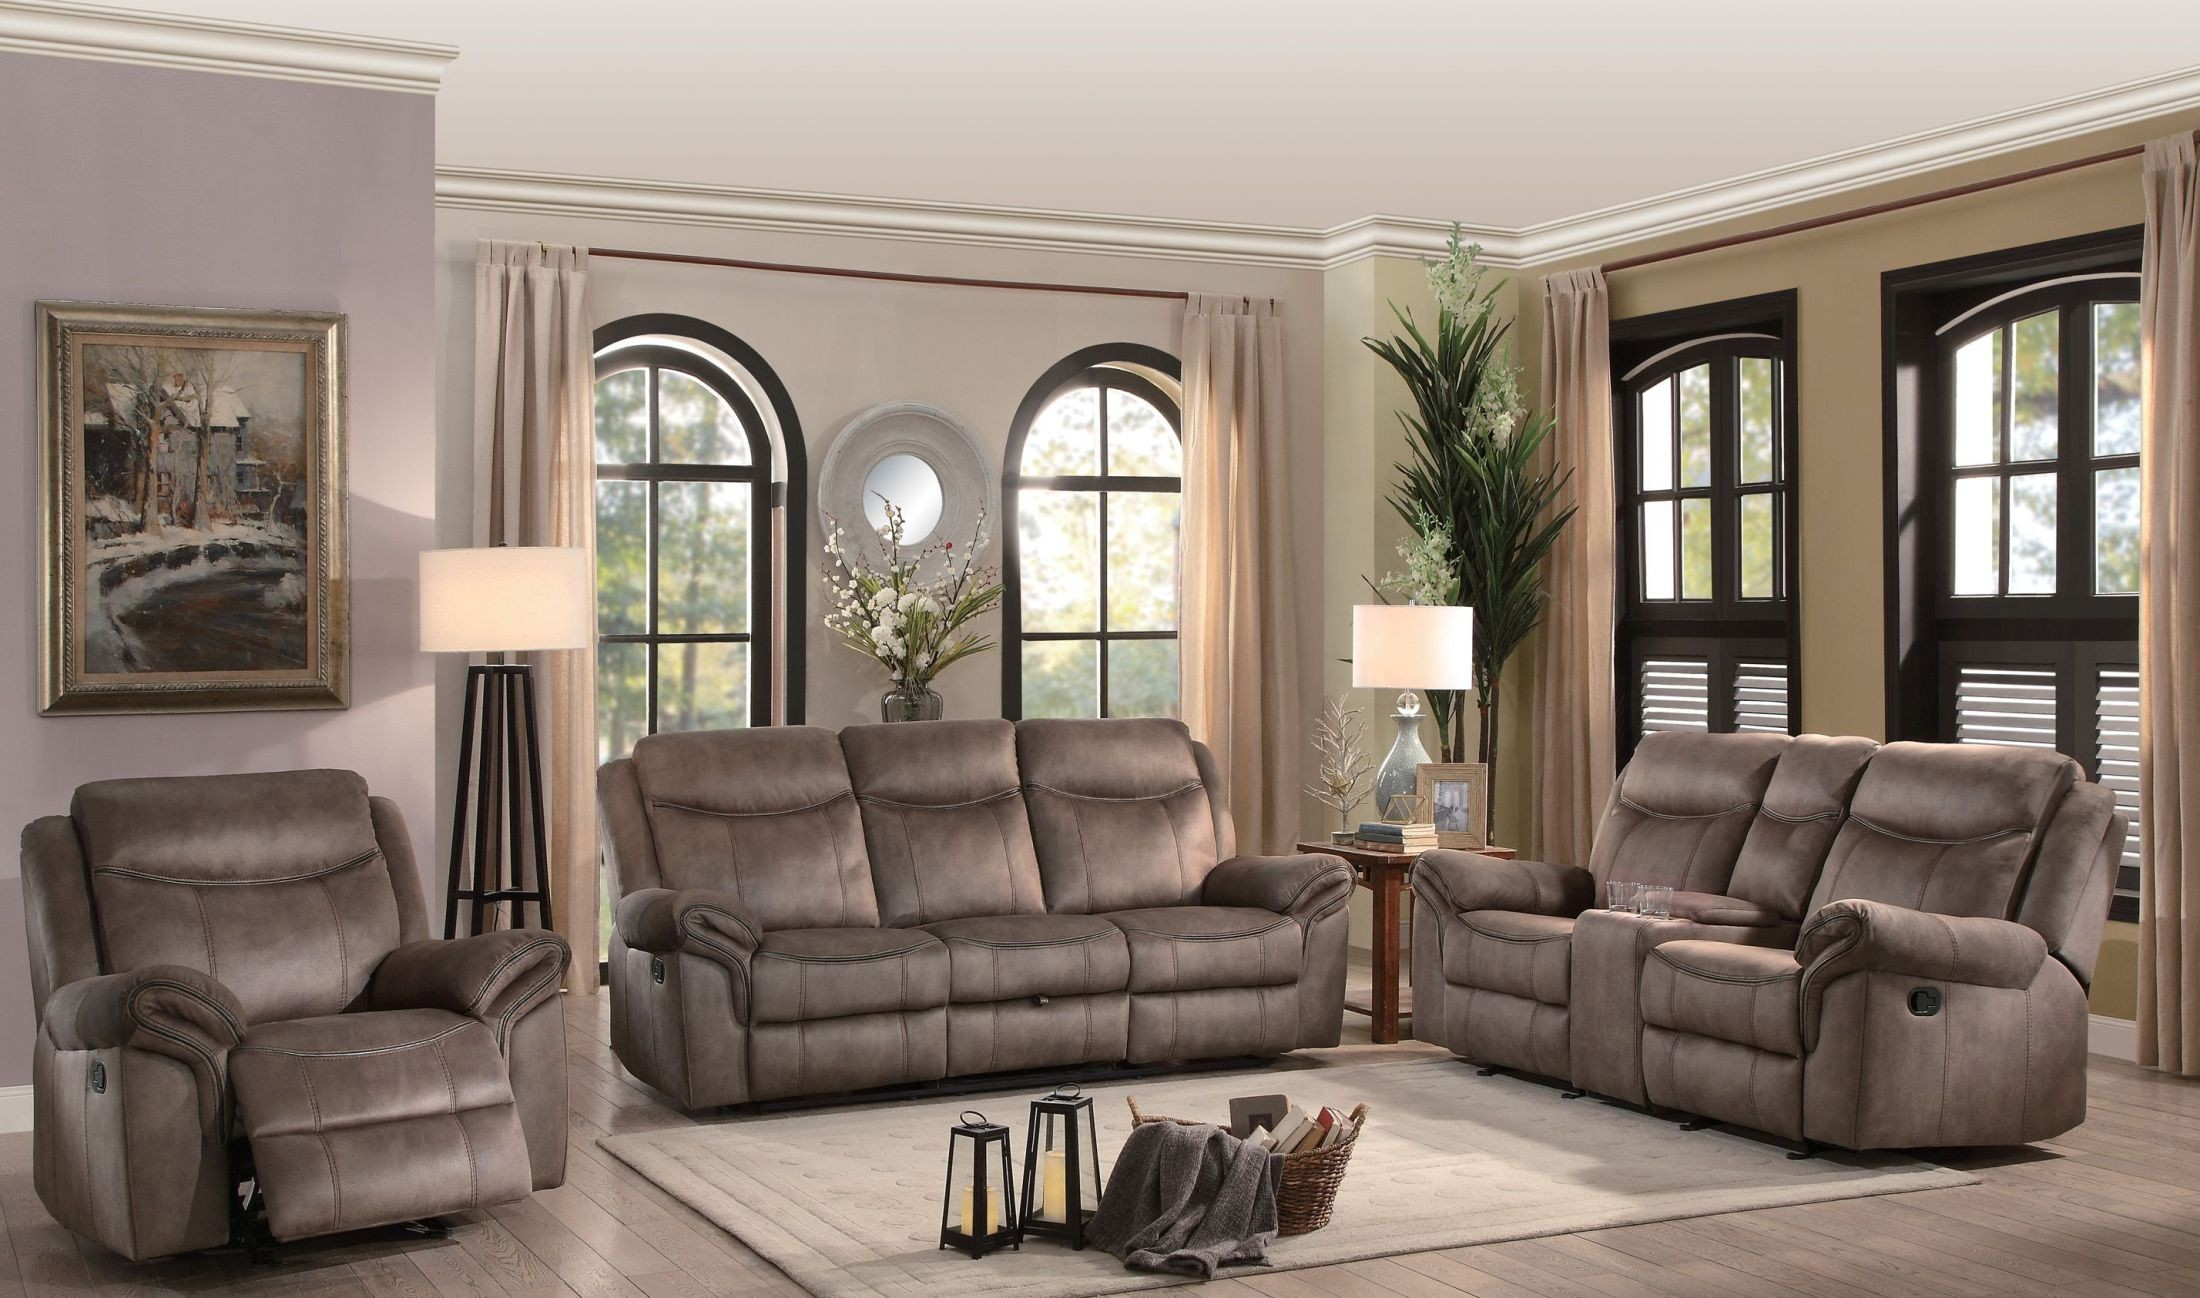 Aram Brown Double Reclining Living Room Set From Homelegance  # Muebles Nicasio Orono